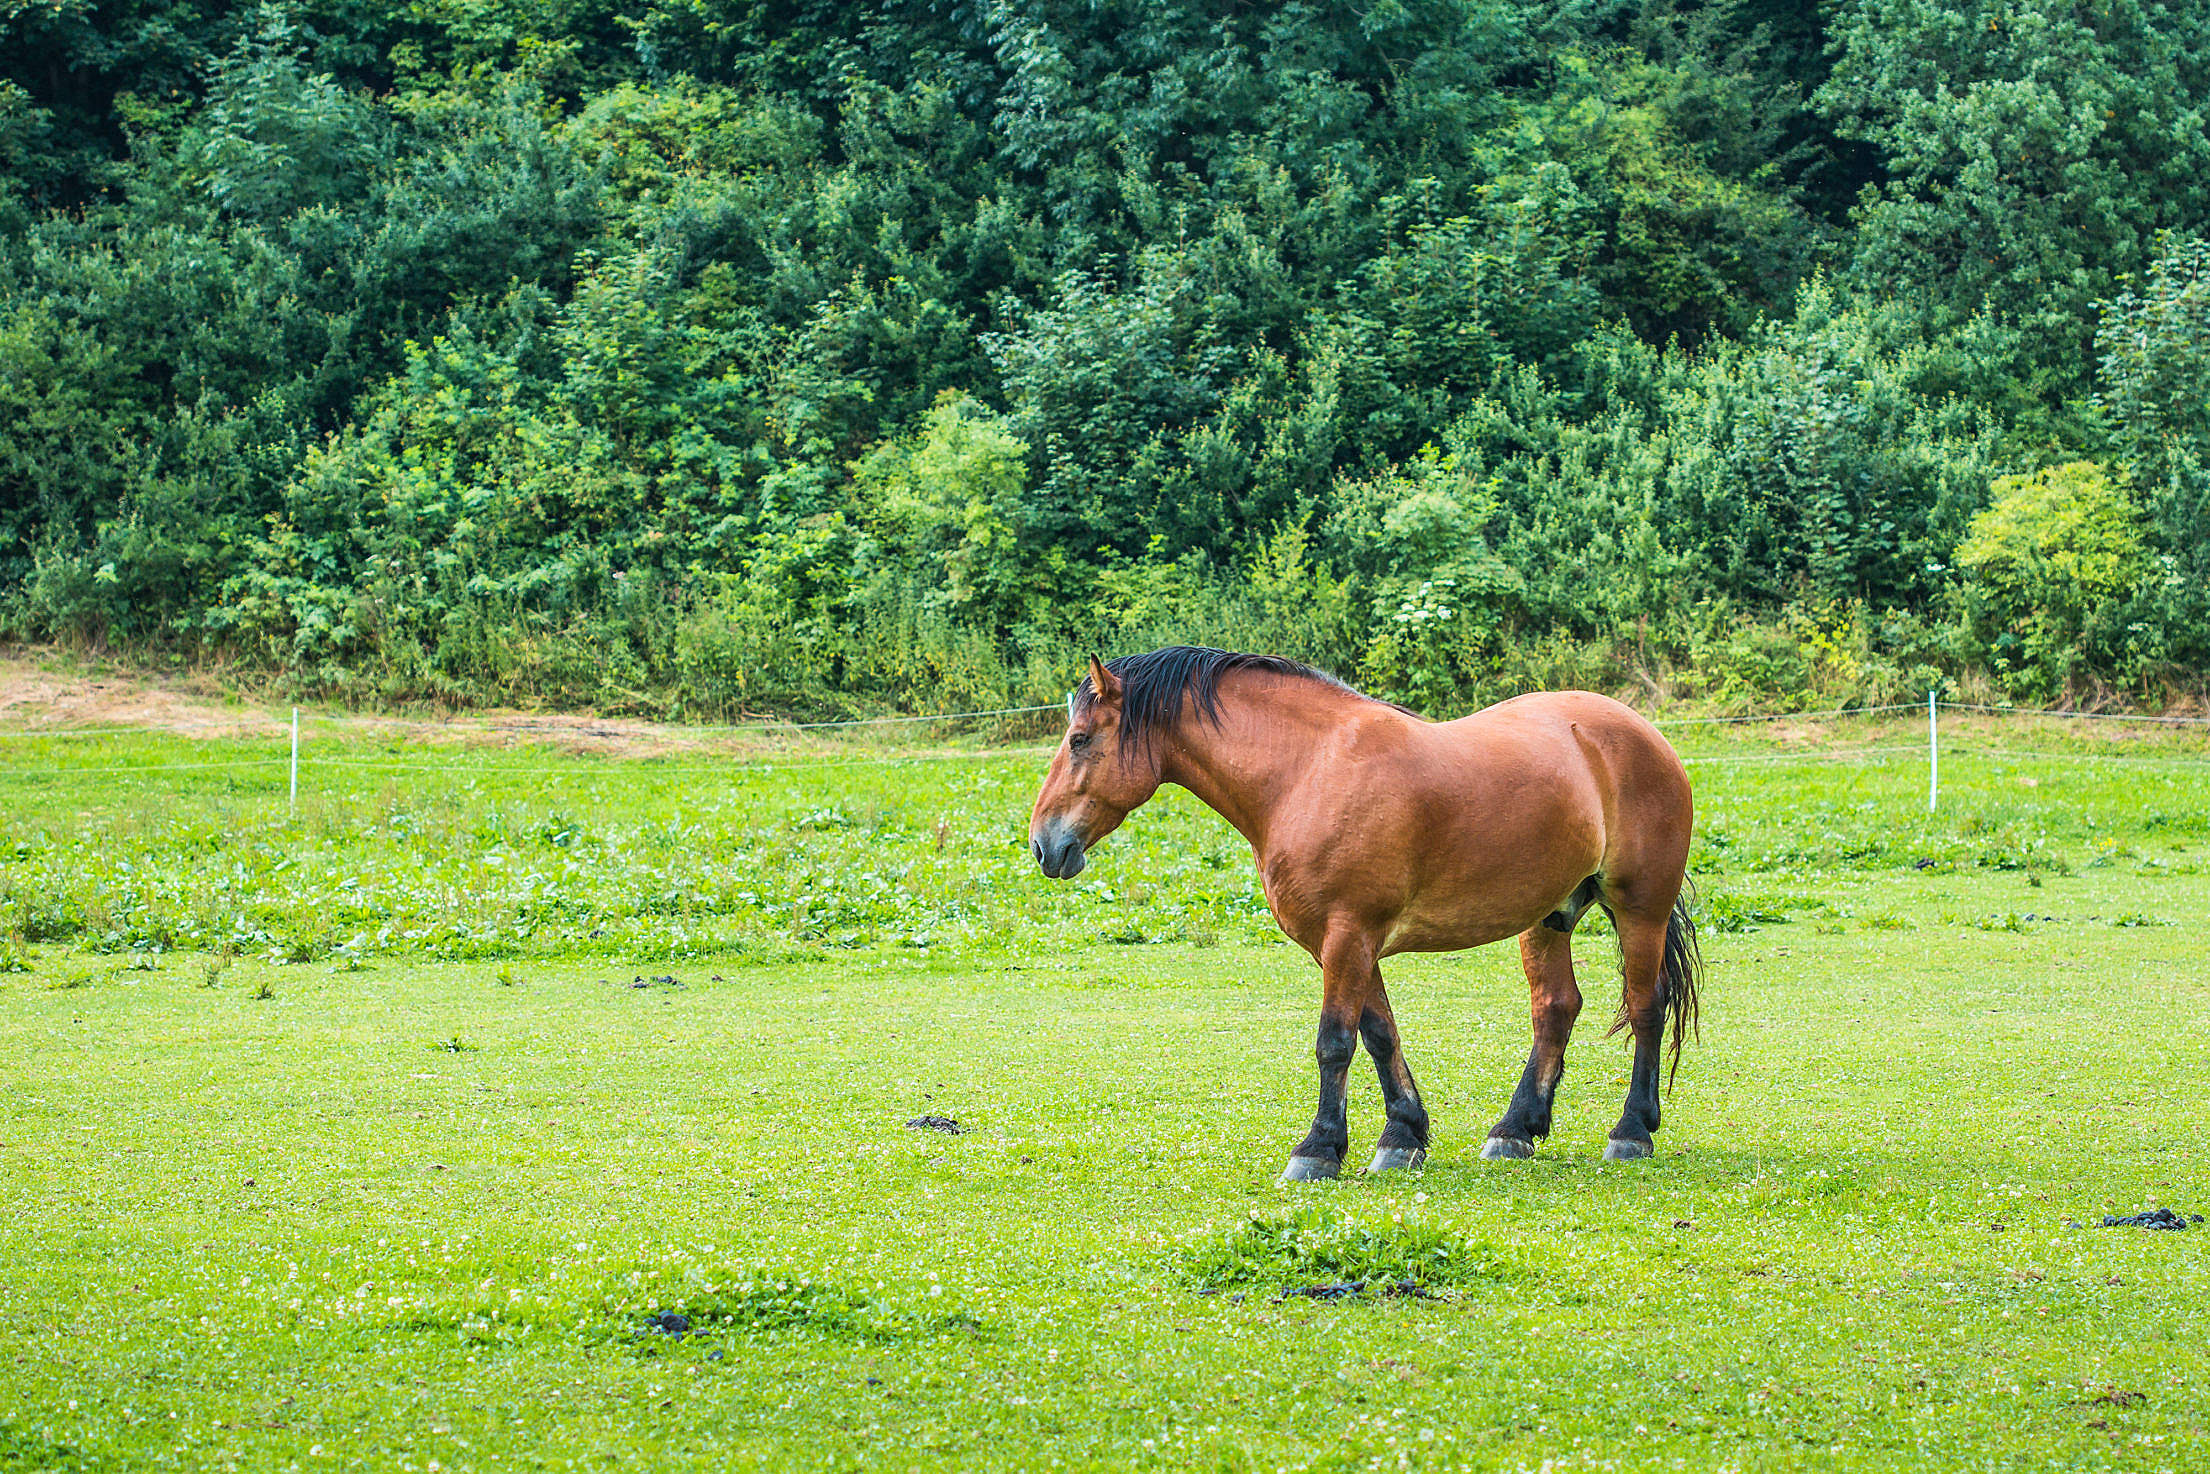 Brown Horse in a Meadow Free Stock Photo